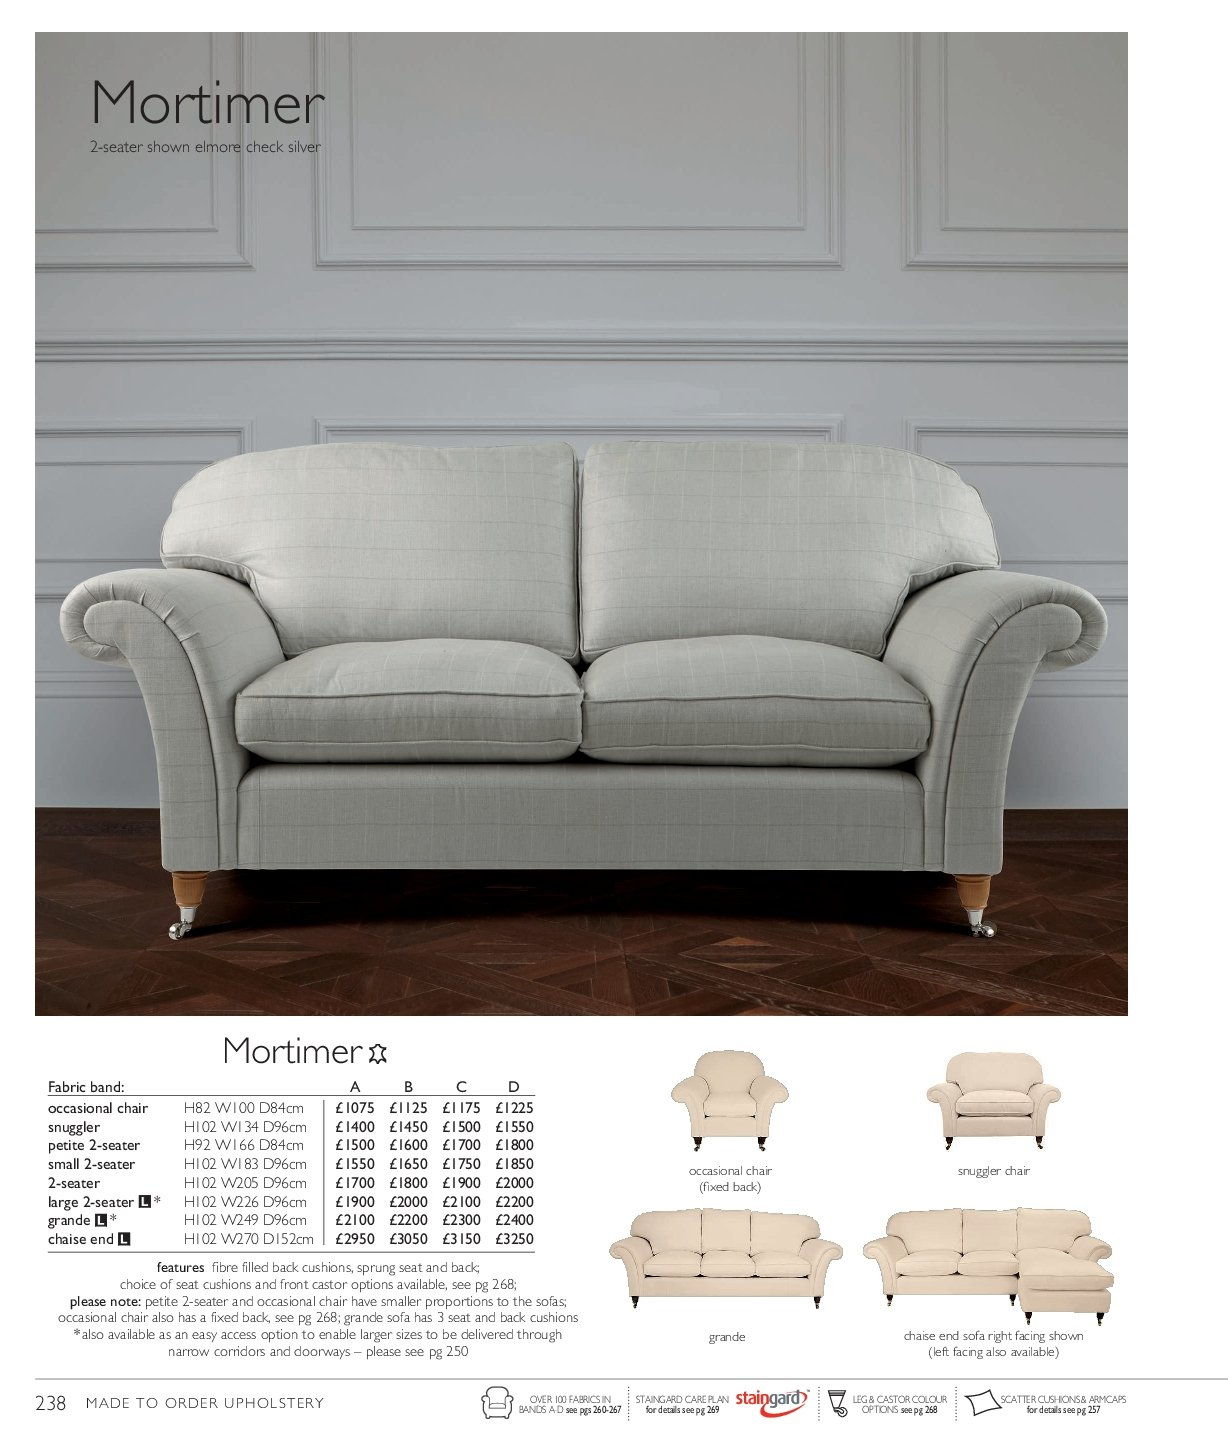 Super Laura Ashley Offer 21 2 2019 1 8 2019 My Leaflet Co Uk Alphanode Cool Chair Designs And Ideas Alphanodeonline